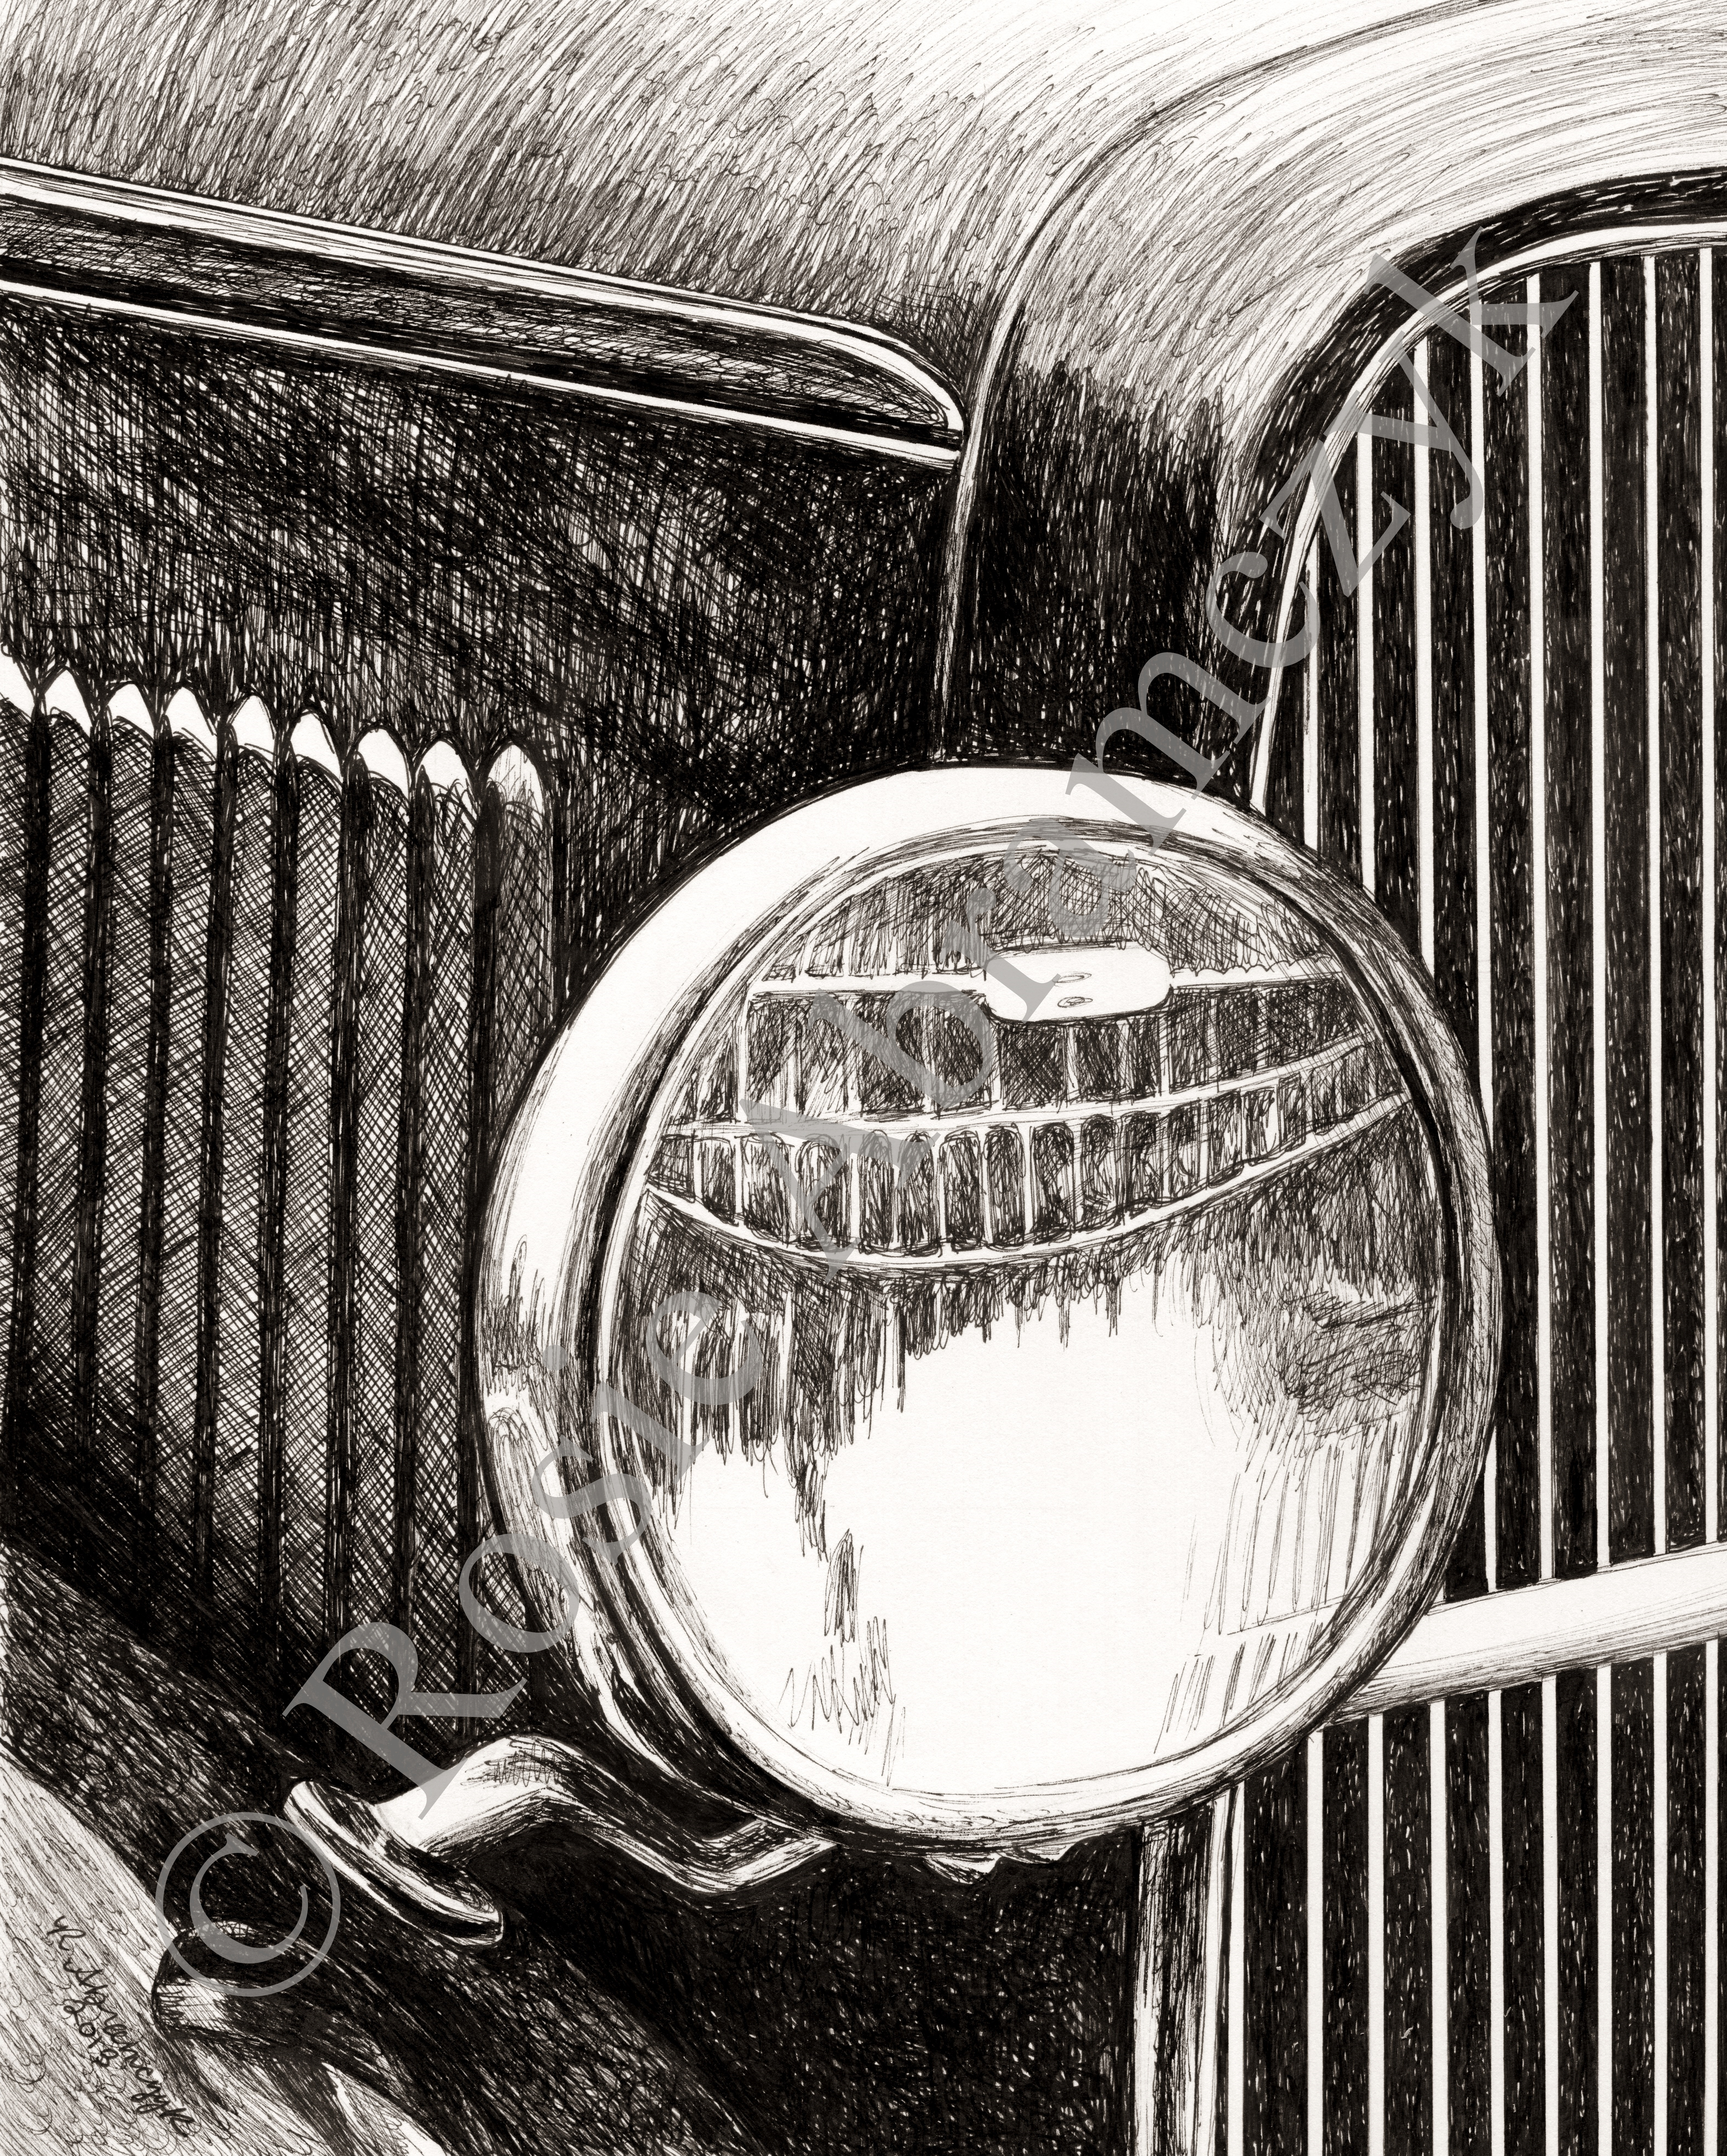 1930 Ford Model A, by Rosie Abramczyk, Pen and Ink, 2013